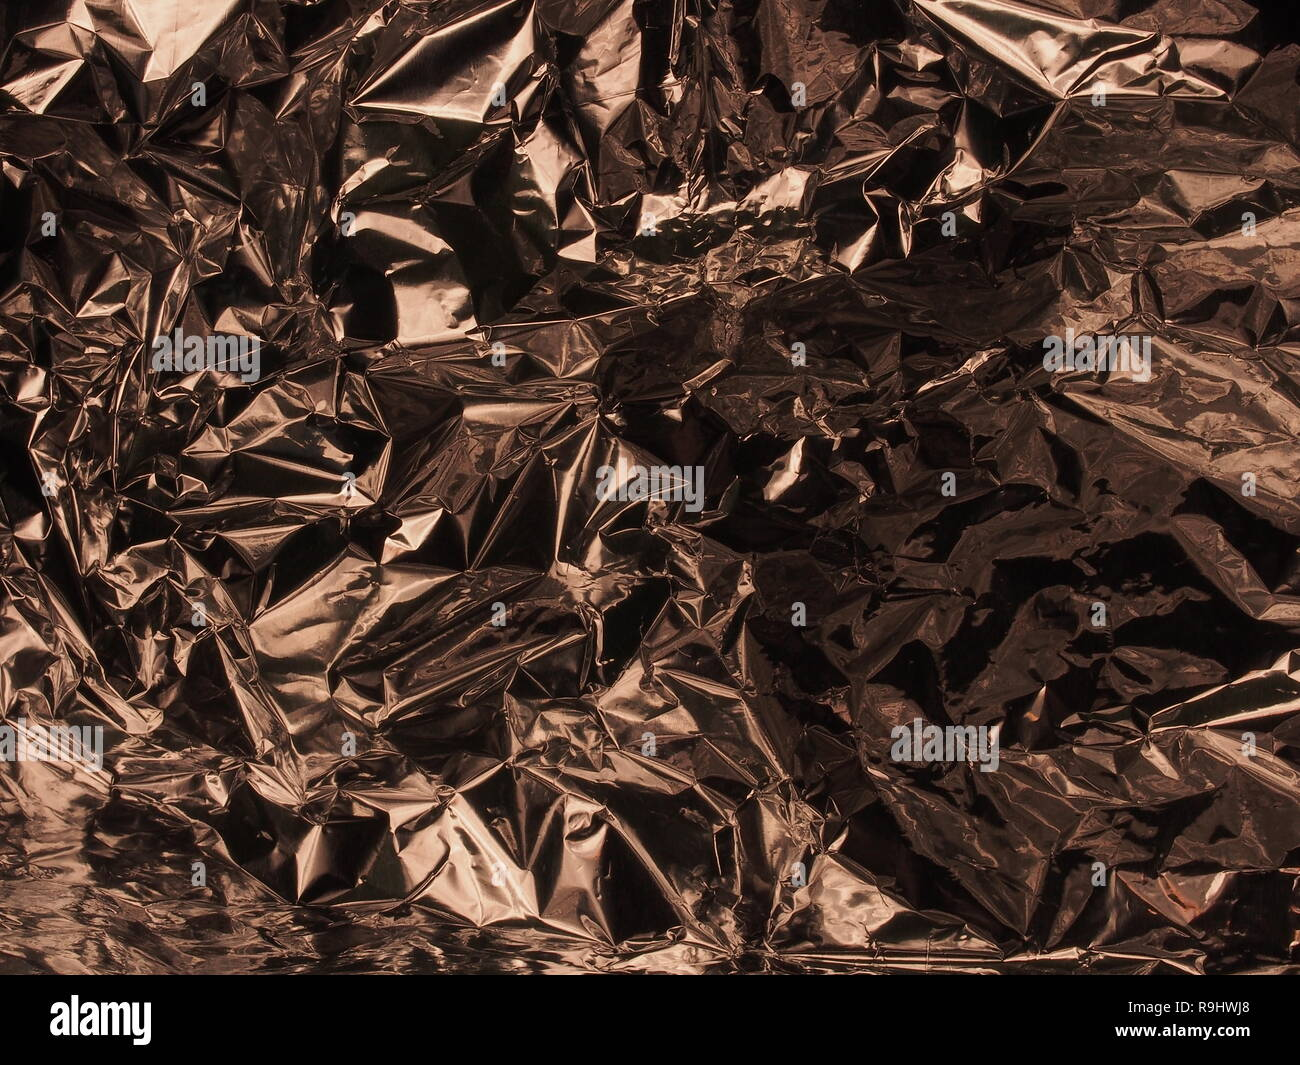 Lüster A Surface With Many Faces Silver Metallic Luster Crumpled Foil